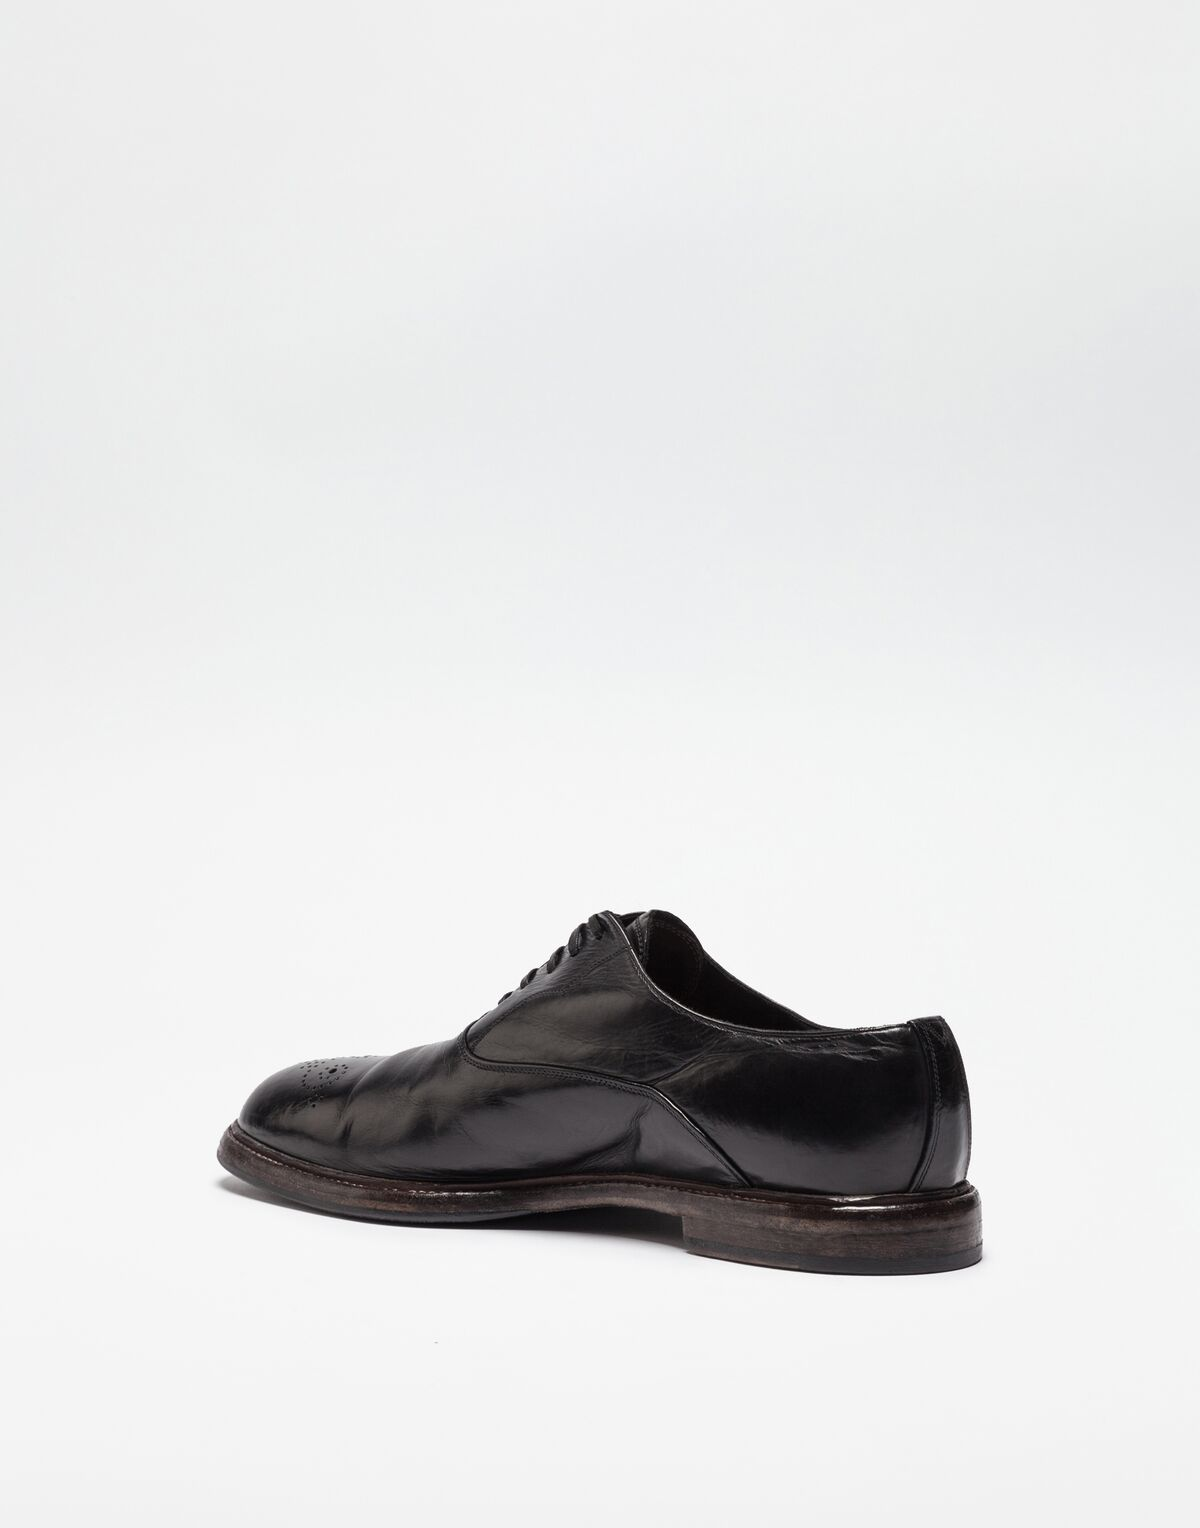 Dolce & Gabbana COLOR DIPPED LEATHER OXFORDS